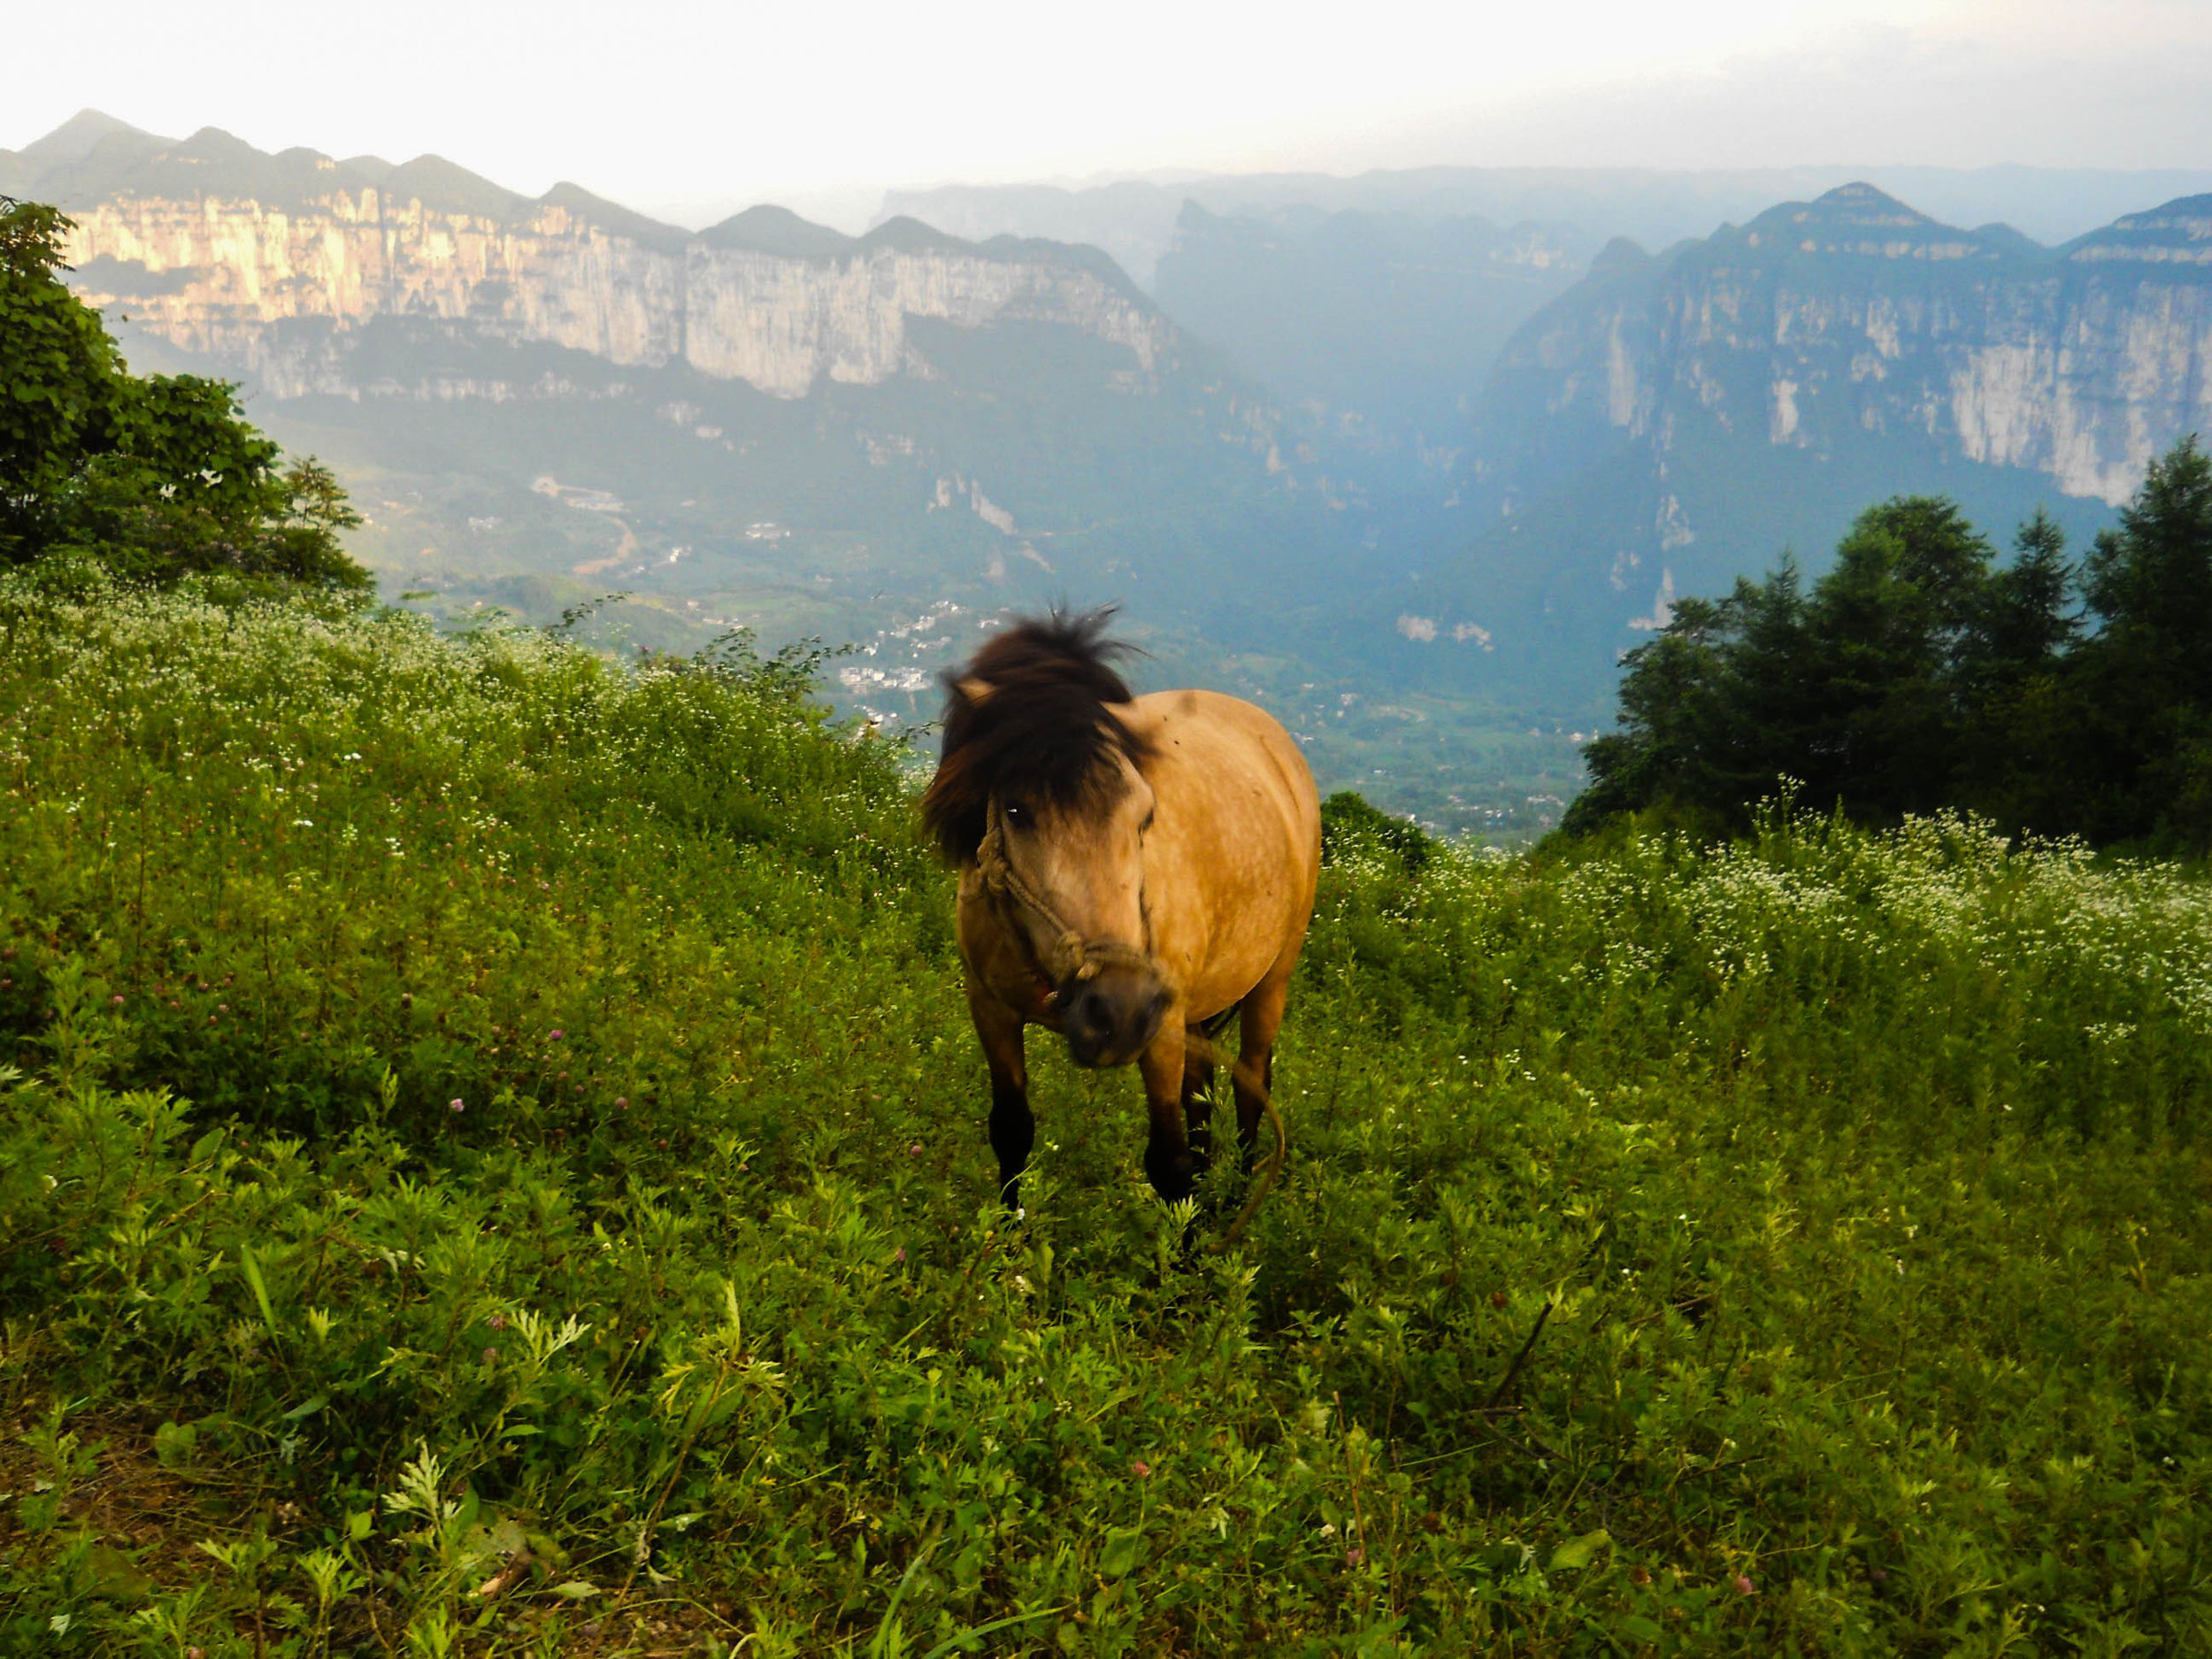 This is my favorite because, well look it! Why wouldn't it be anyone's favorite? A horse, wild flowers, and a backdrop of pure wonder.